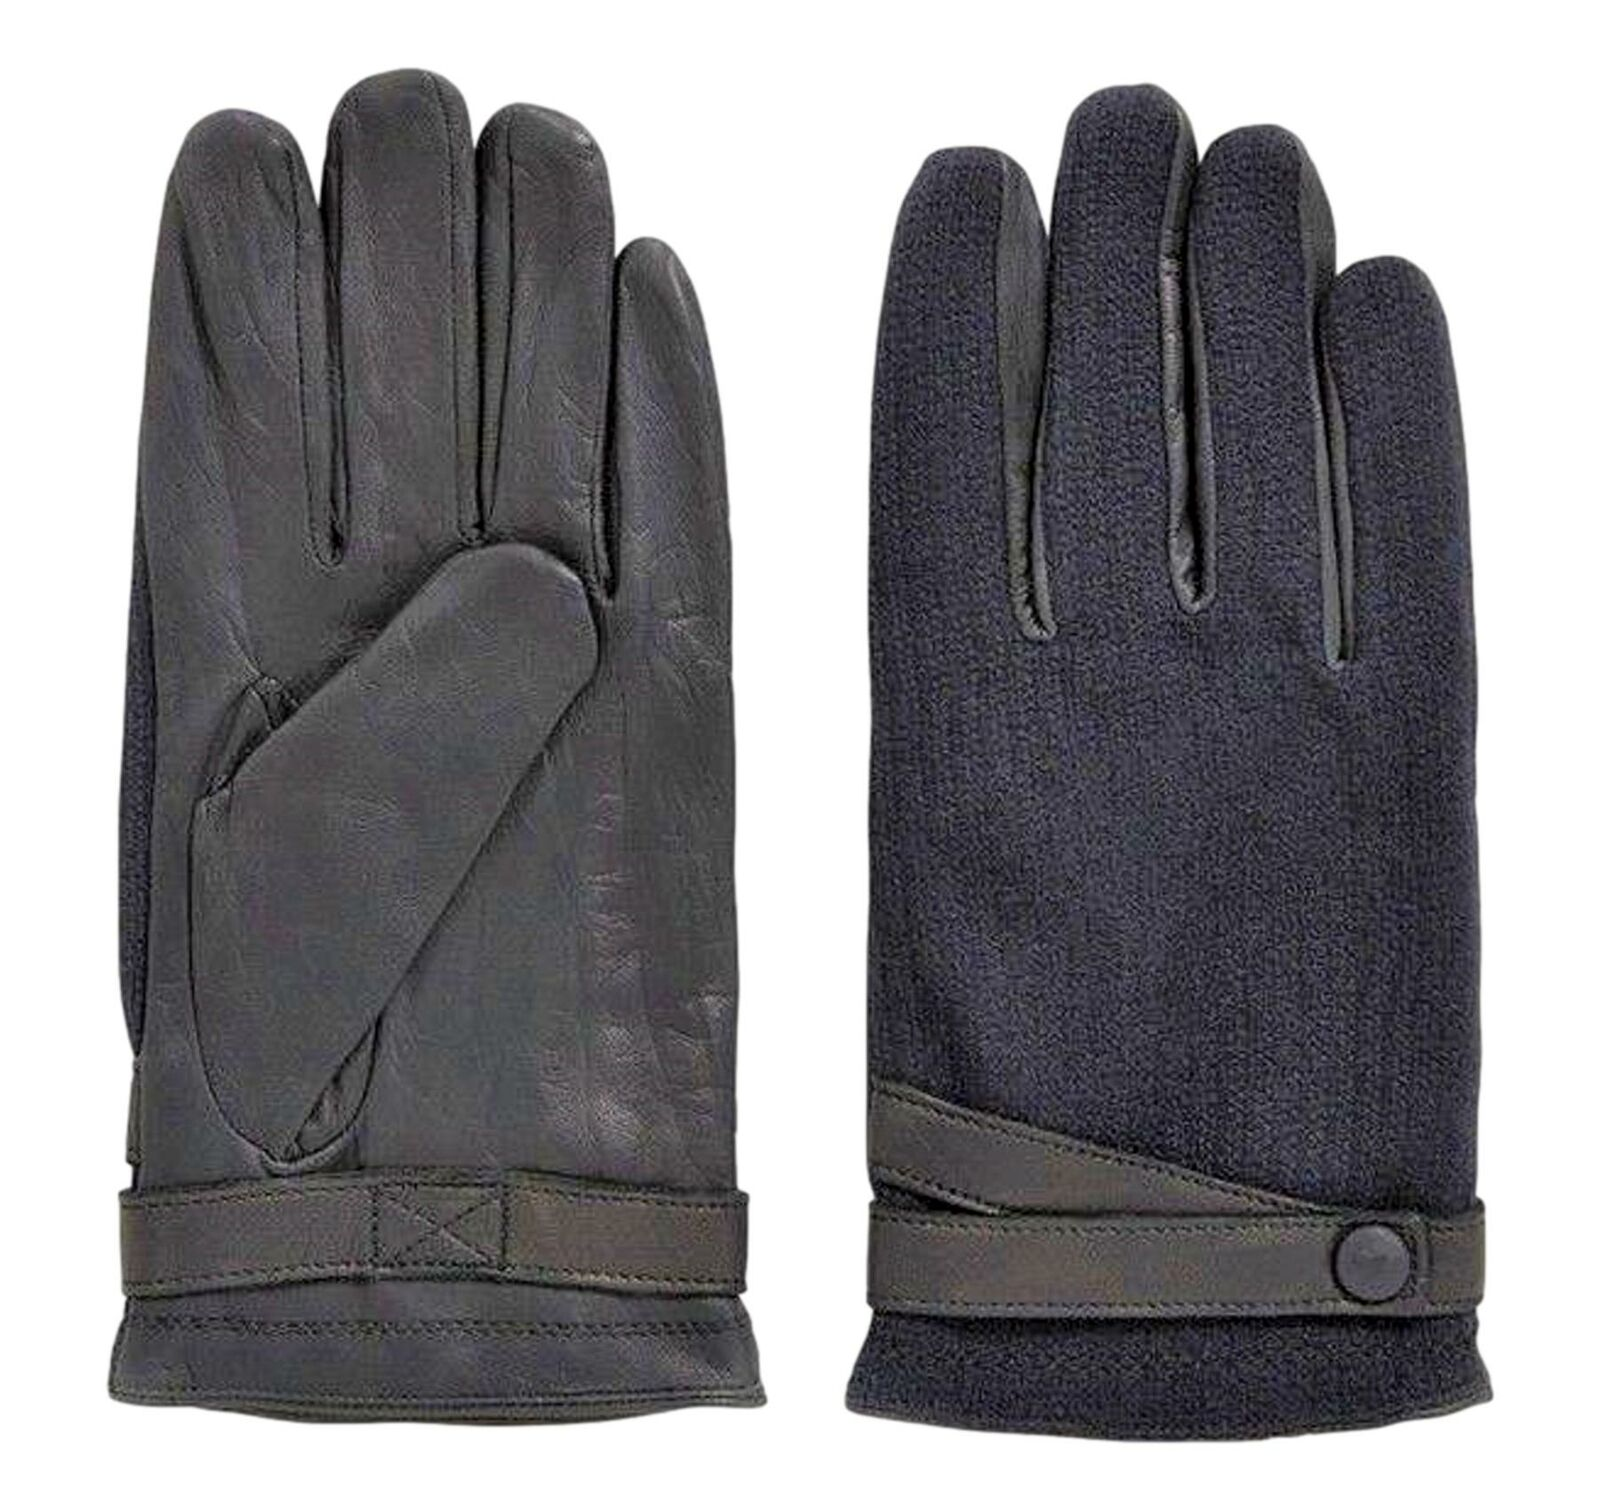 Hugo boss Leather Gloves With Sections Fabric A Contrast Gossling 50374390